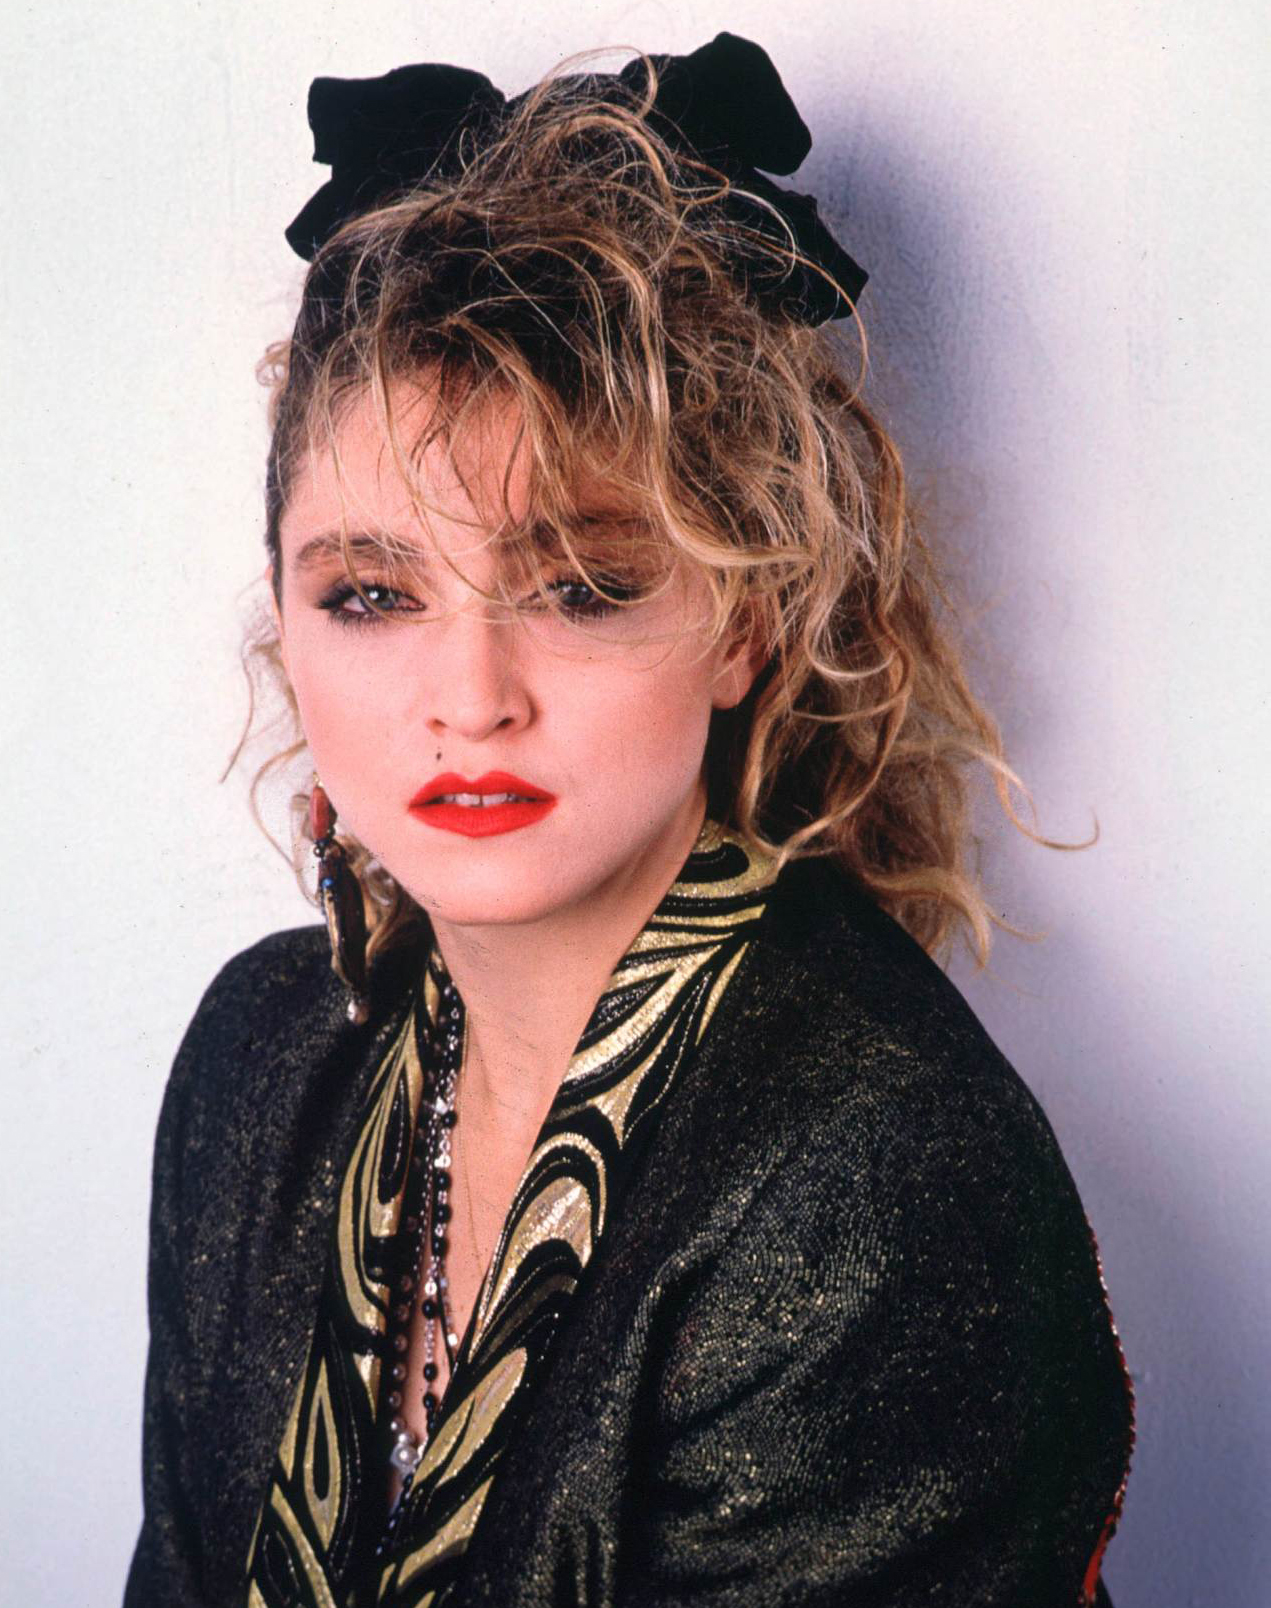 madonna_into_the_groove_1985